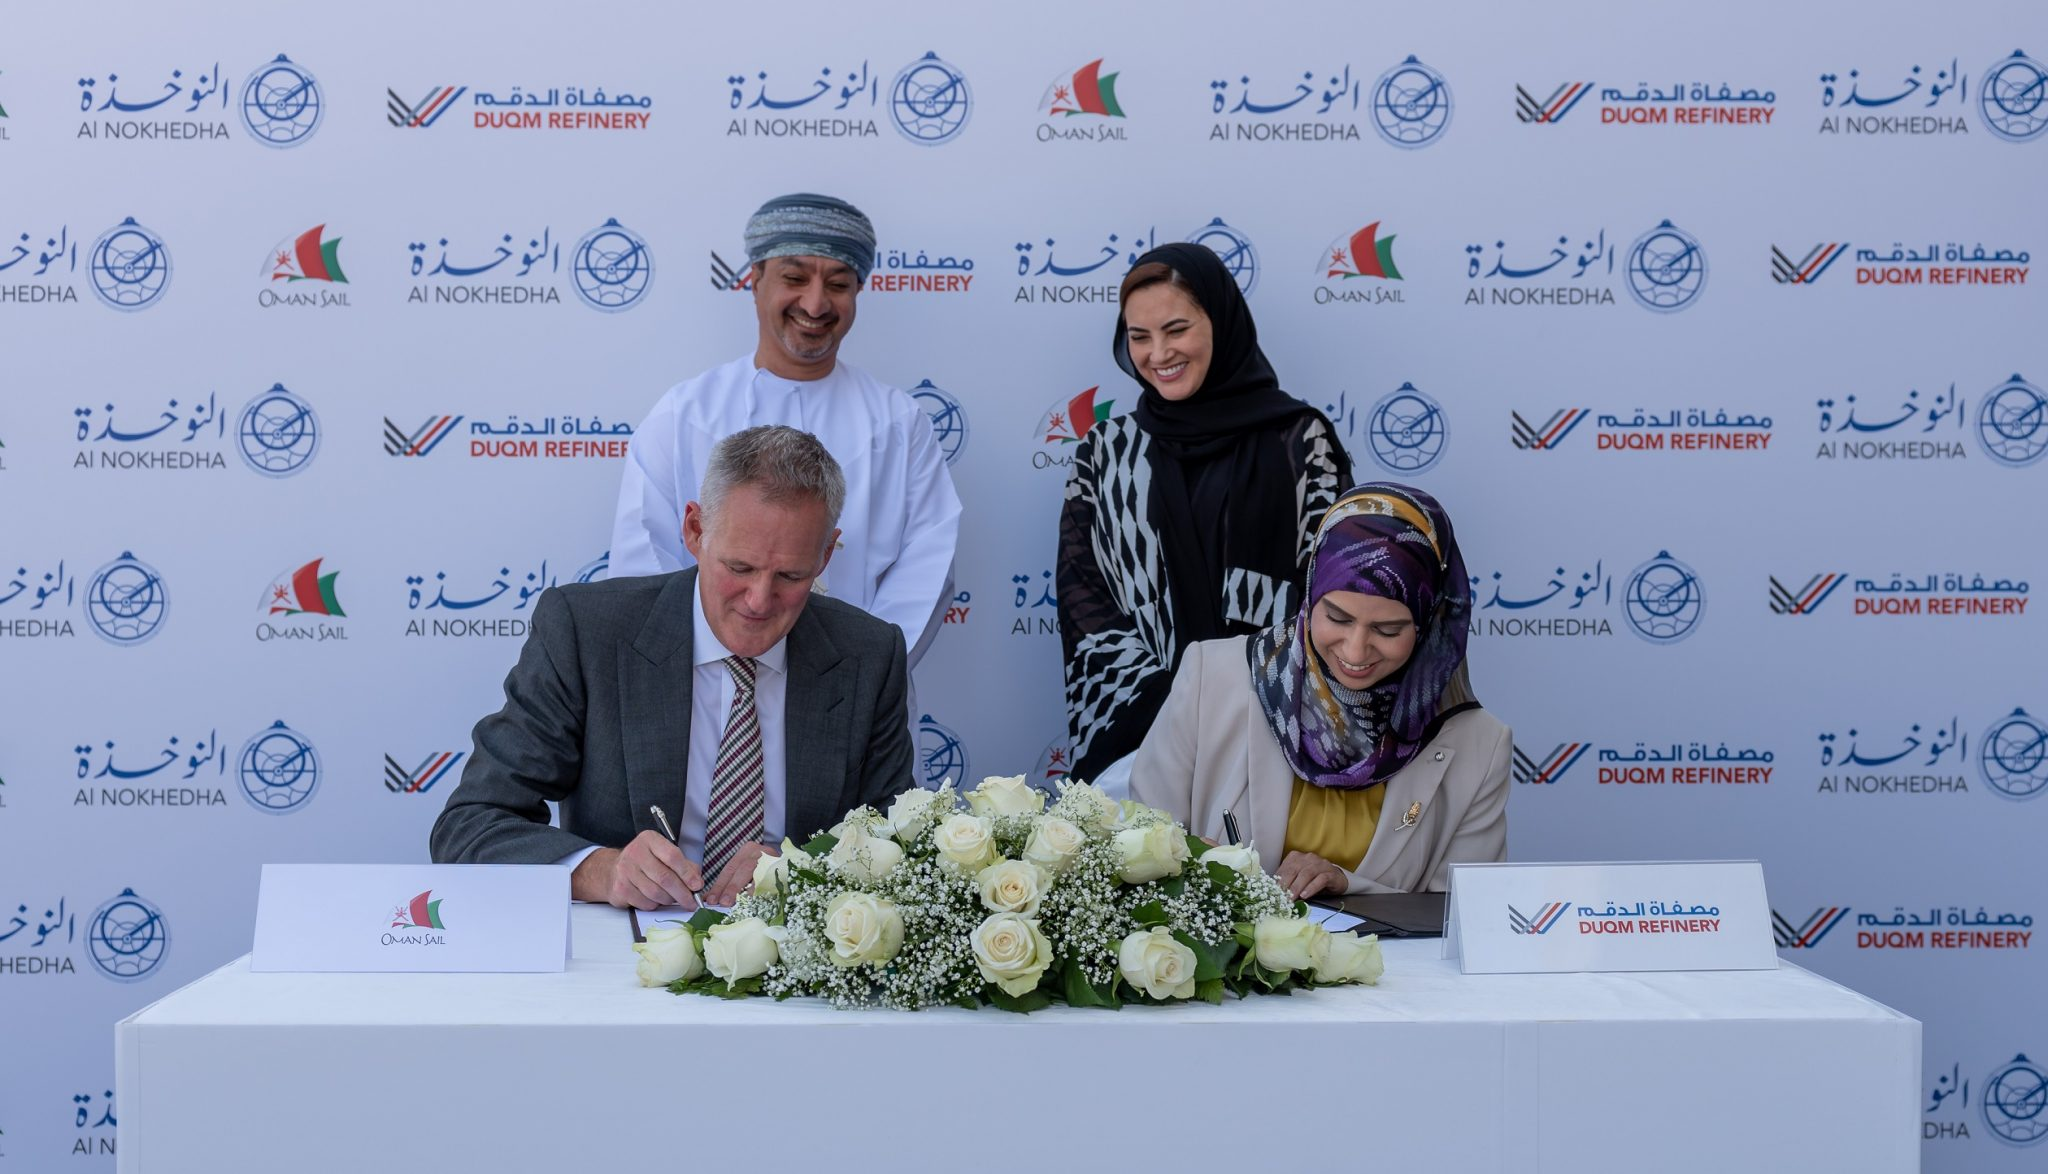 Duqm Refinery and Oman Sail Join Hands to Conduct Employability Skills Development Courses for Omani Youth